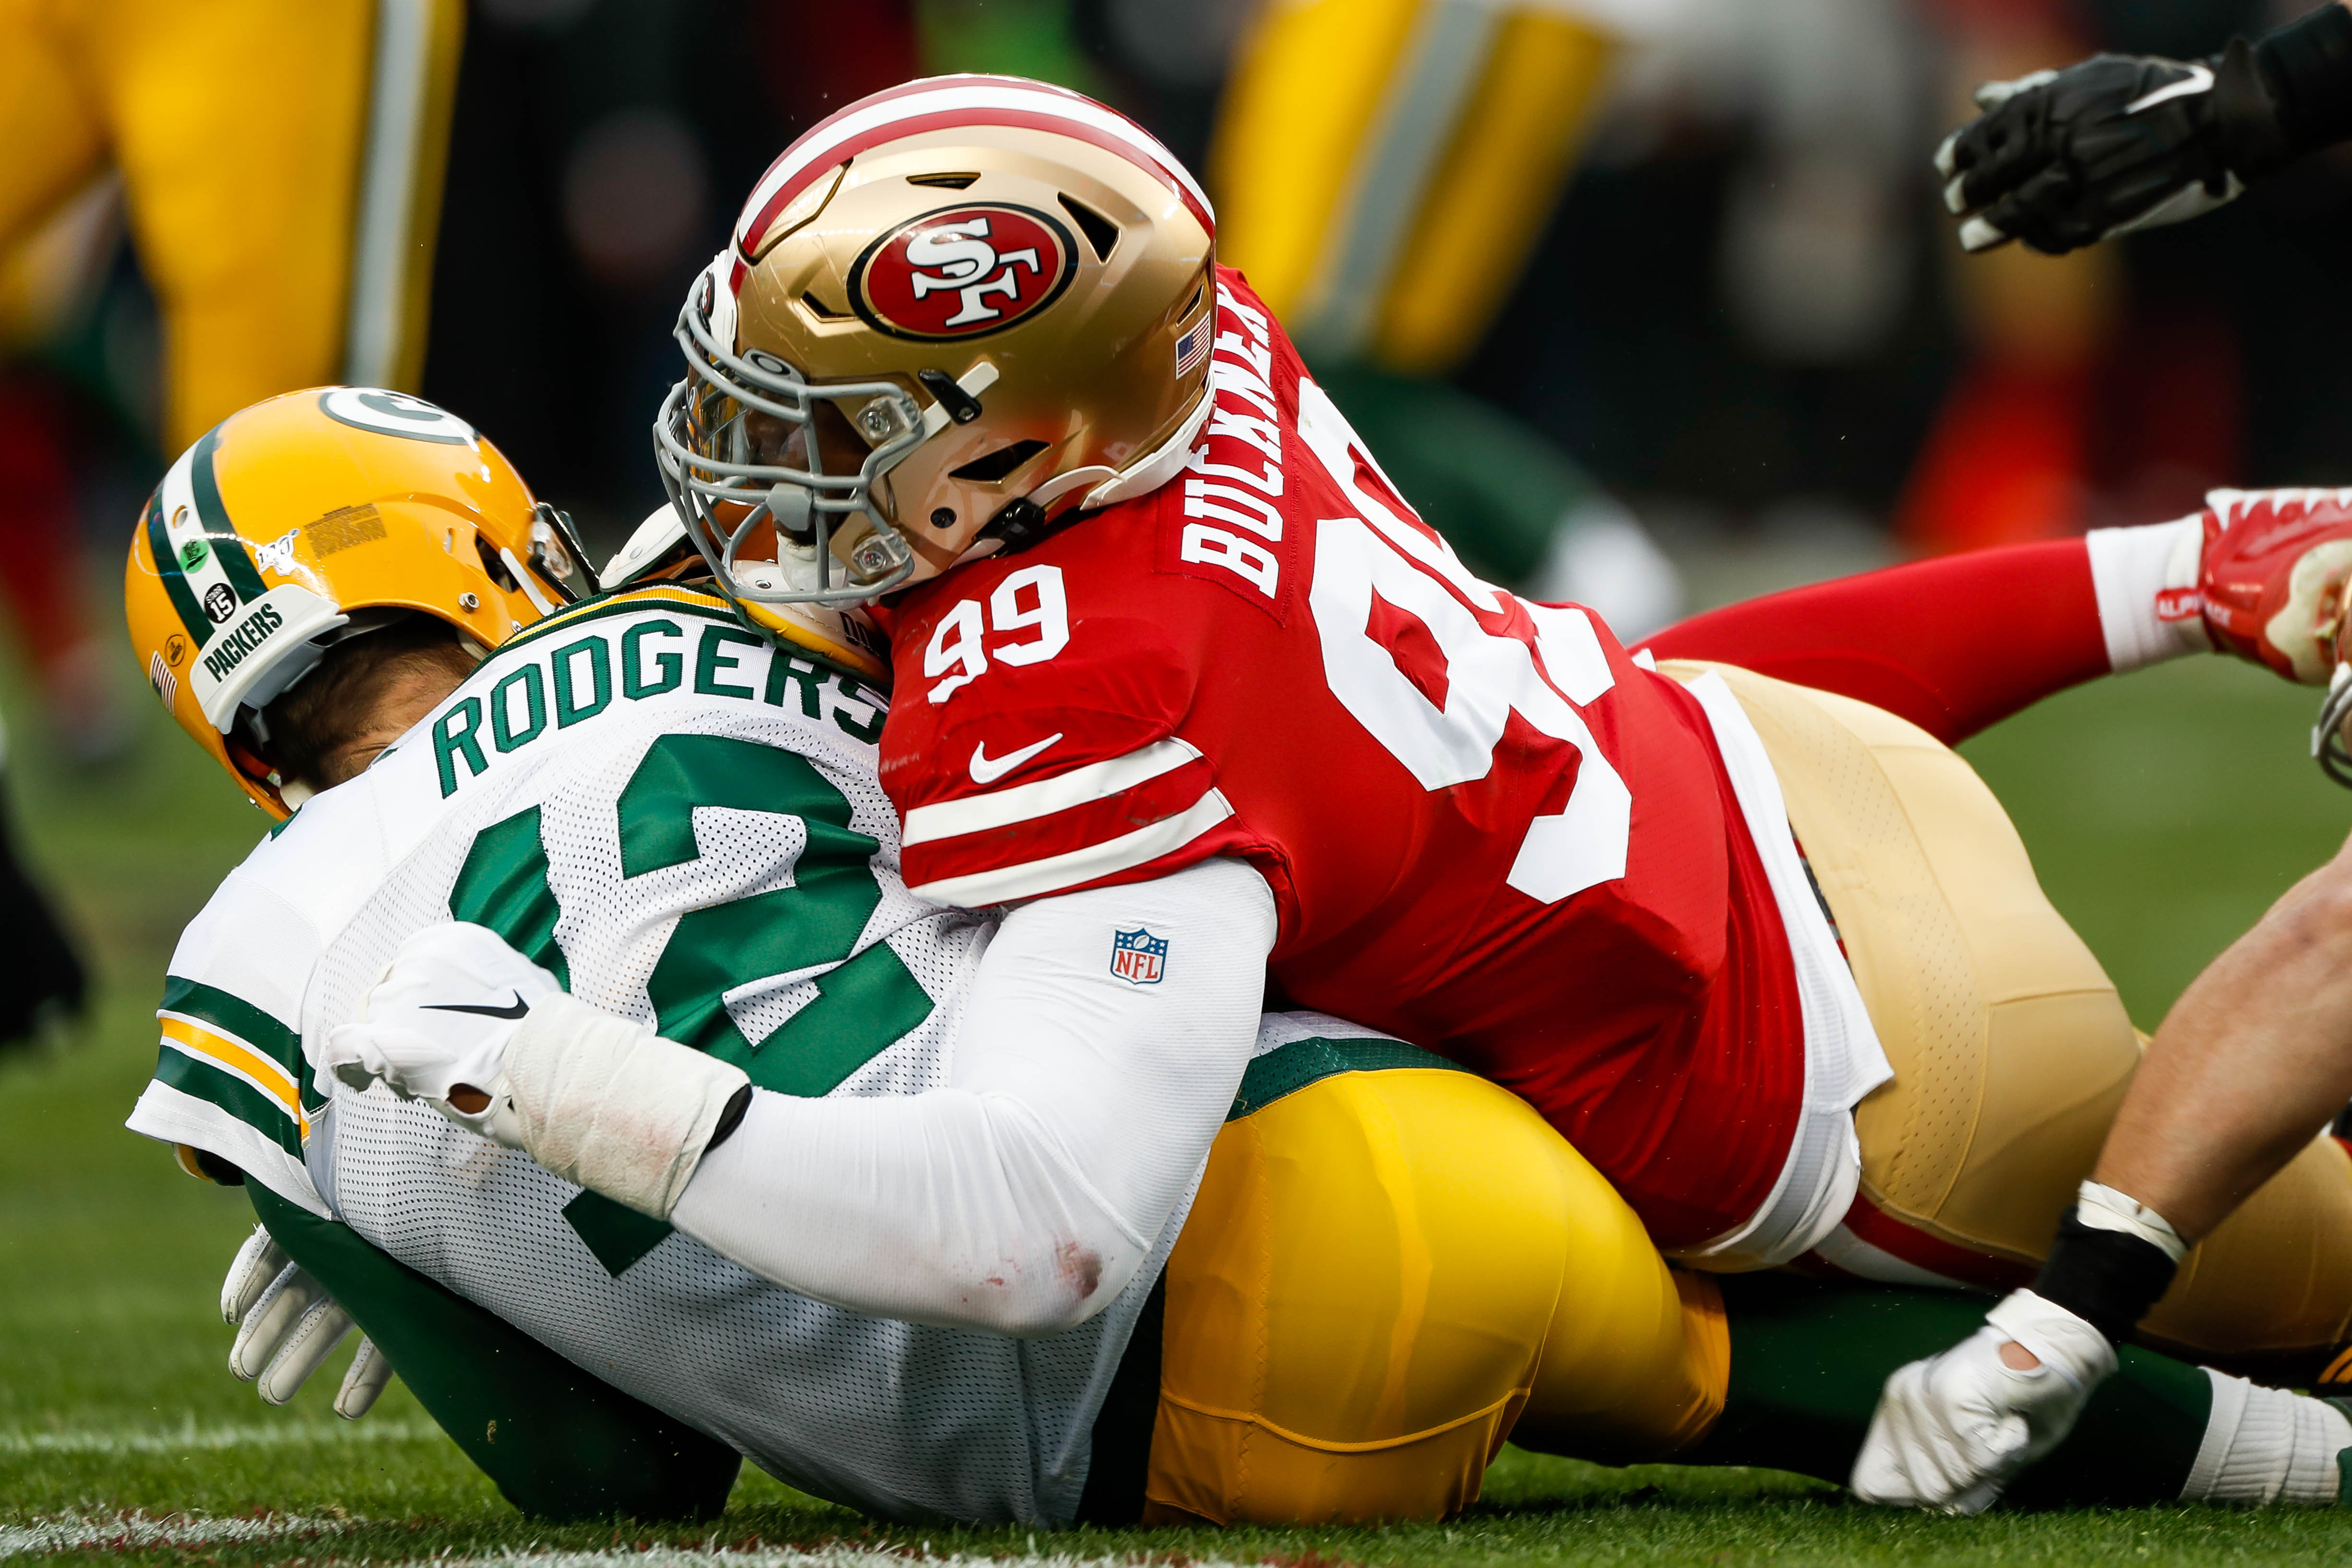 DeForest Buckner and the Niners made life miserable in two games against Packers quarterback Aaron Rodgers, including the NFC championship game. (Randy Vazquez/MediaNews Group/The Mercury News via Getty Images)